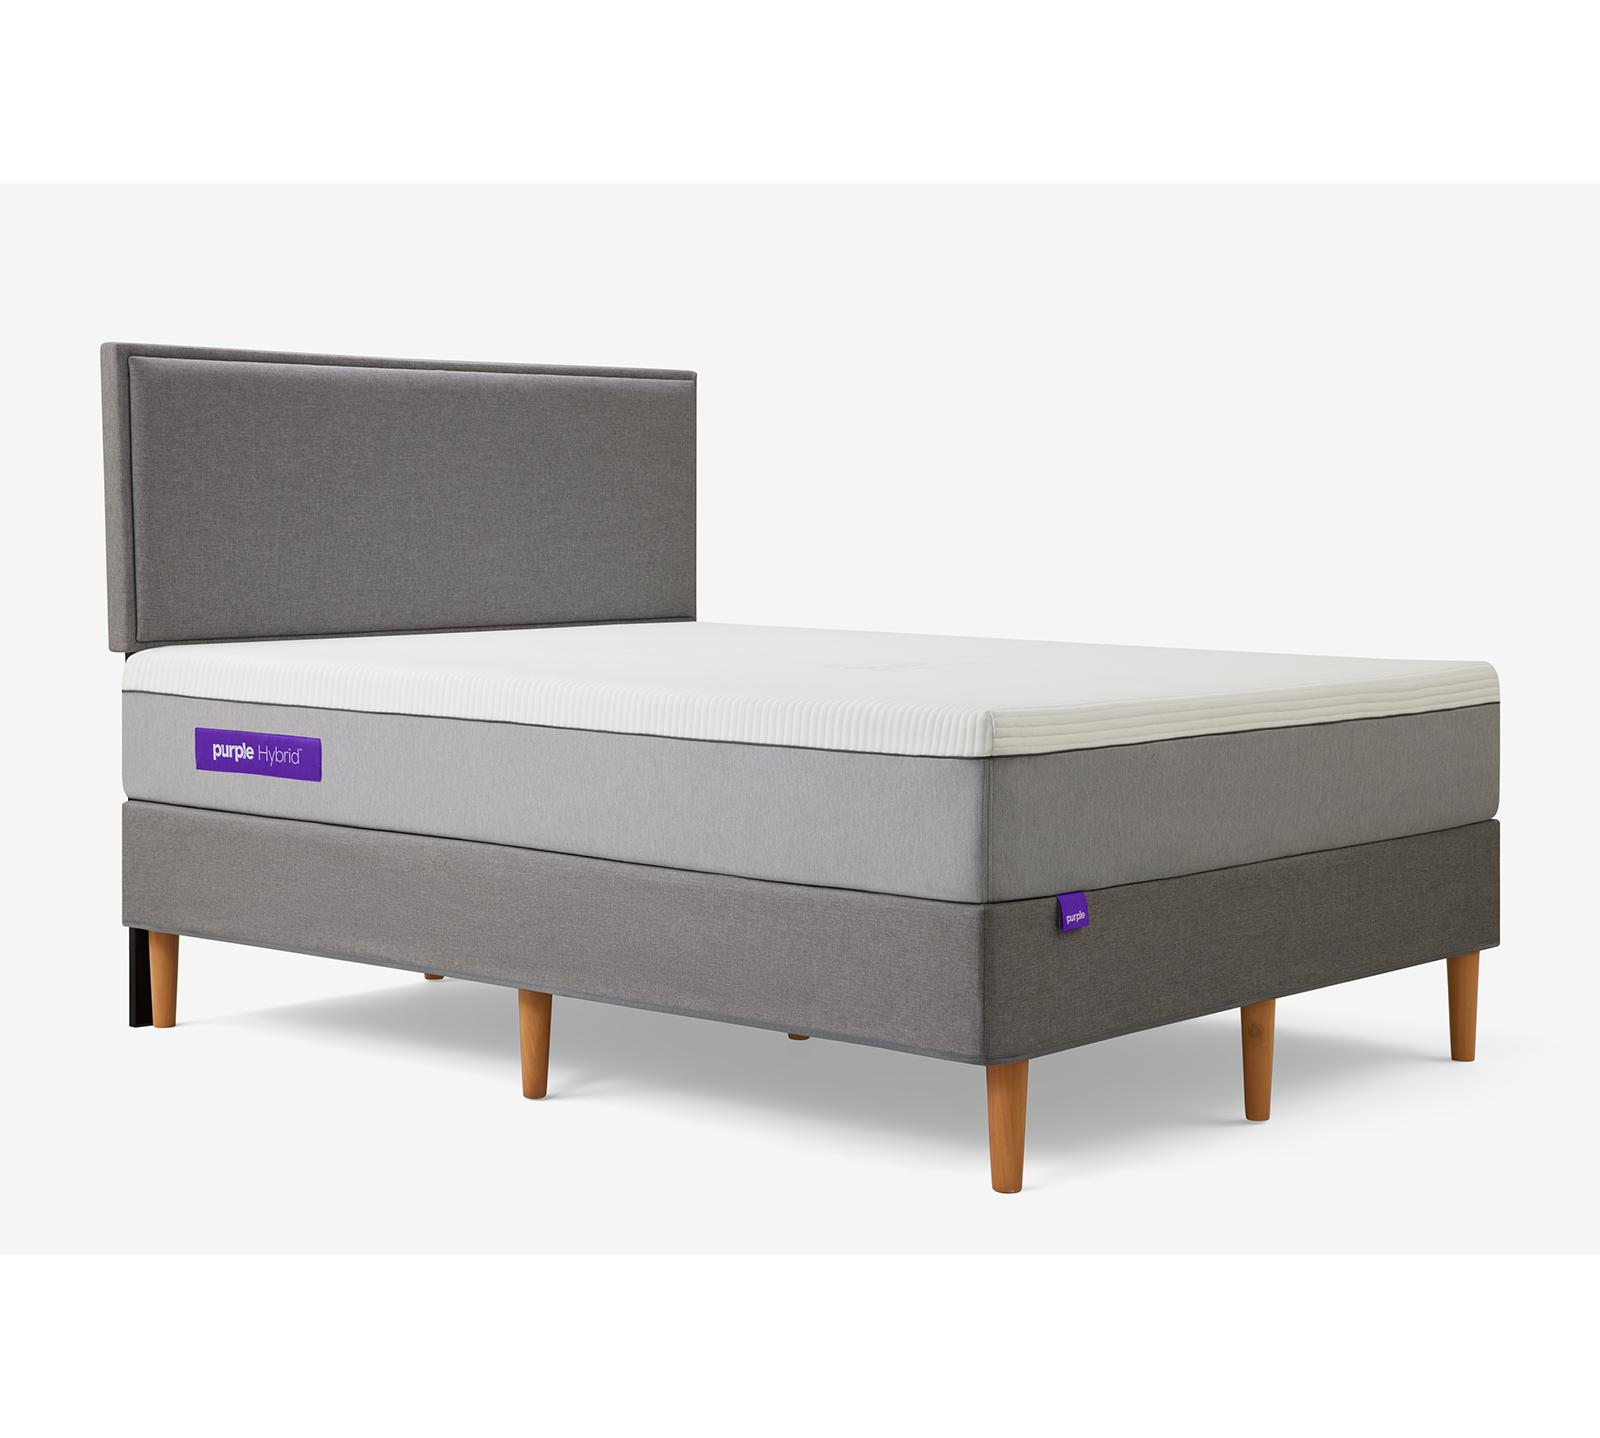 "The scientifically comfortable mattress that broke the internet just got an upgrade. Perfect for sleepers who like their mattress a little on the firm side, yet oh-so-comfy. Get the ""soft where you want it and firm where you need it"" support you've come to expect from Purple. The Purple .2 mattress uses Purple's patented Smart Comfort Grid™, a unique 2-inch top layer that dynamically adapts to the human body and stays cool for superior, personalized comfort and better sleep. Additionally, Purple has added a new base layer comprised of individually wrapped responsive-support coils that further enhance the overall comfort, responsiveness, and durability of the mattress. No matter how weird you sleep, this new-school classic has your back."